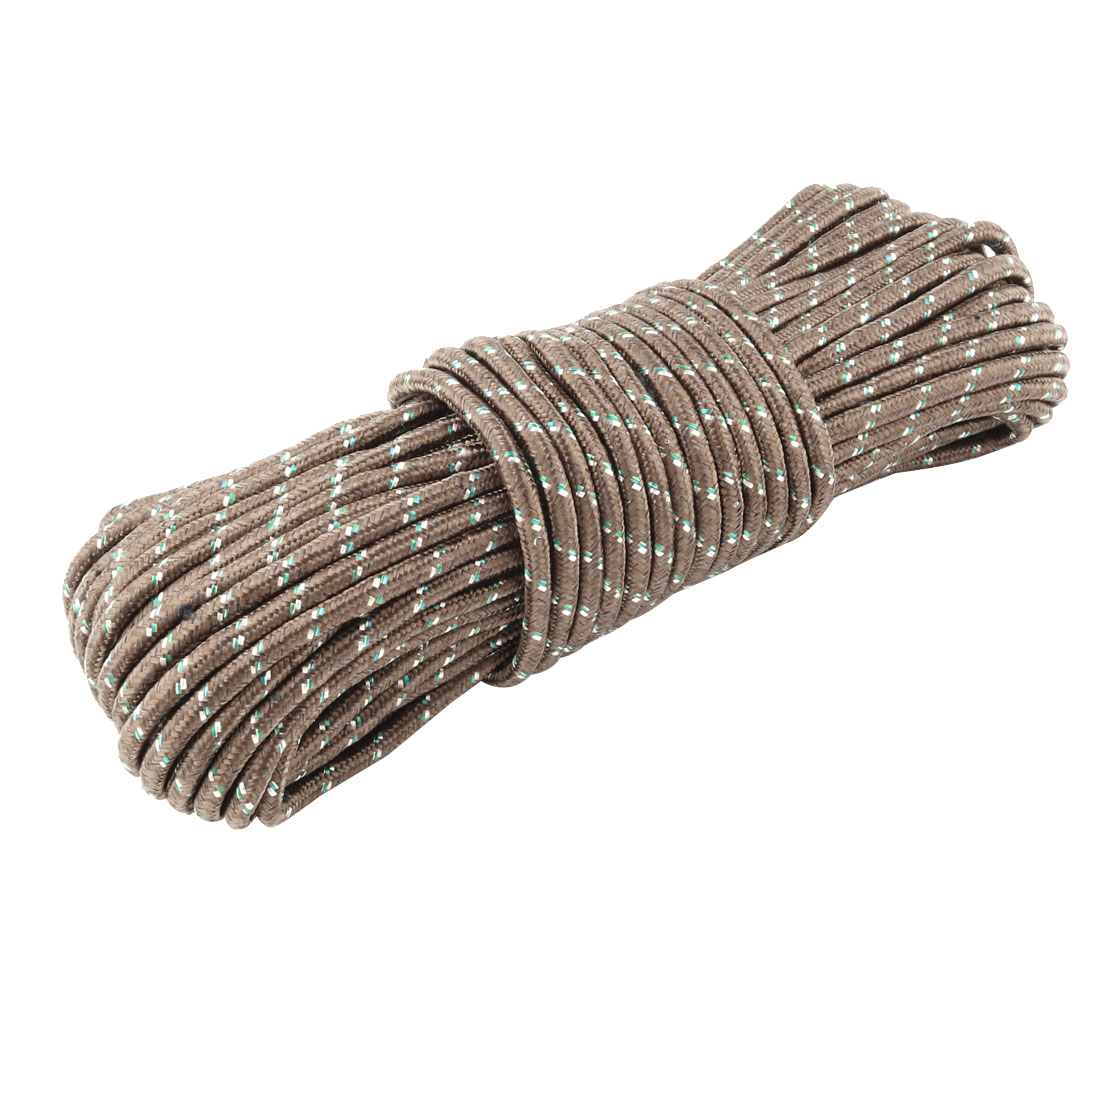 Household Outdoor Nylon Hanging Windproof Clothes Rope String Line Clothesline Brown 28m Long